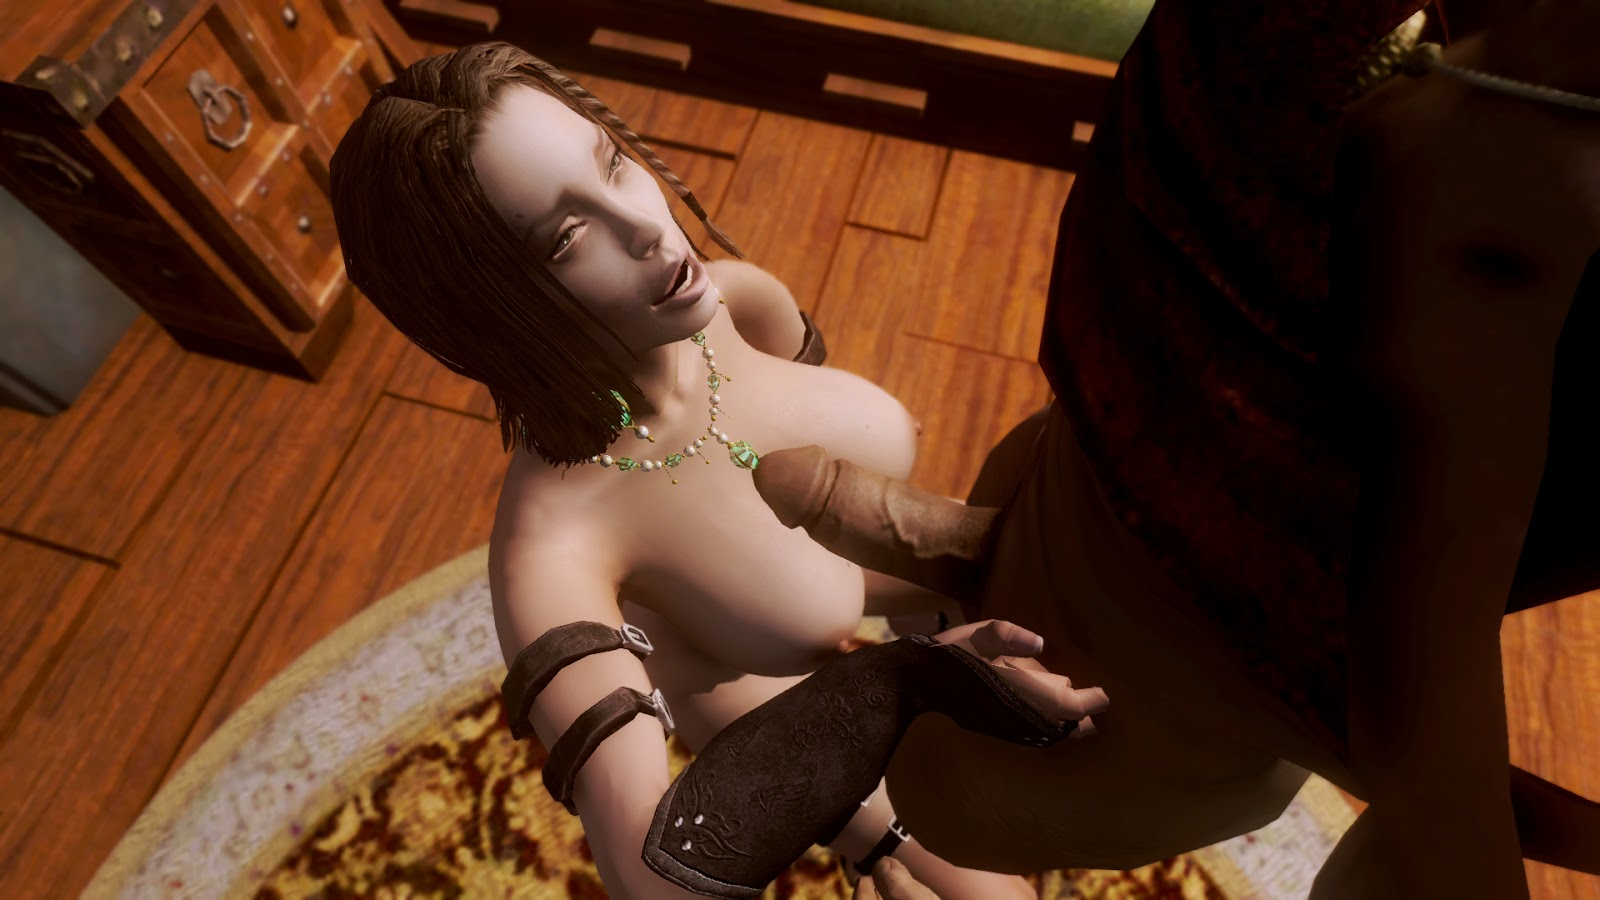 Uncensored nude mods of tomb raider xxx scenes